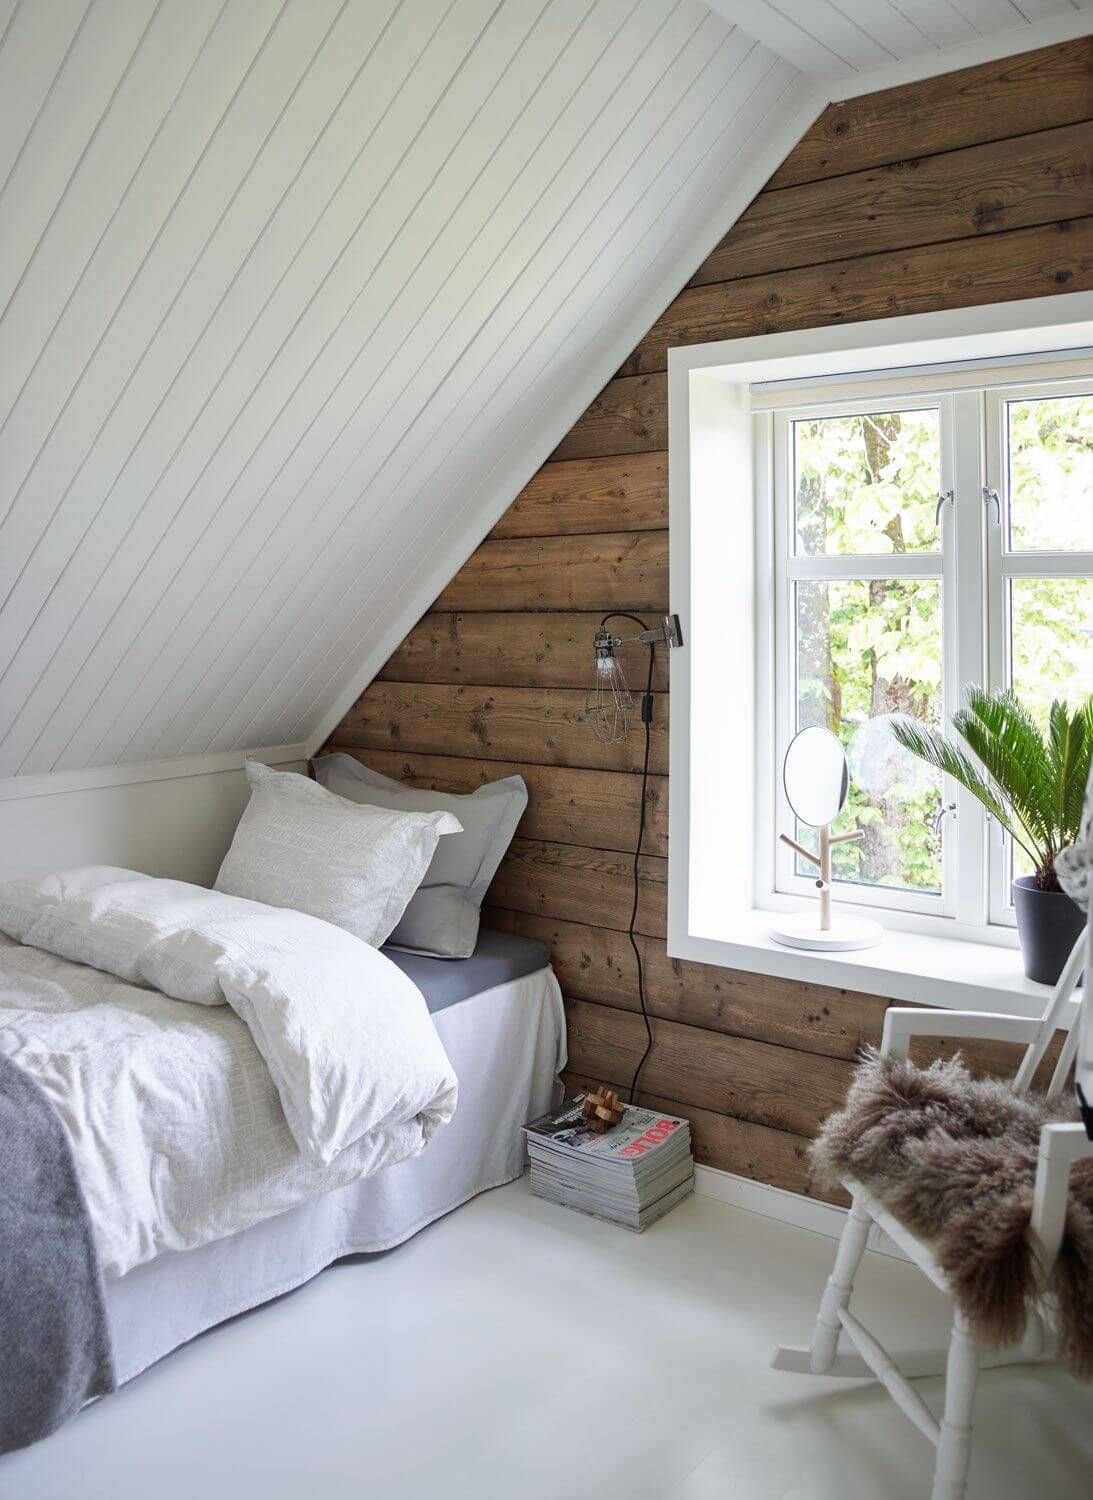 10 Attic Bedroom Ideas 2020 Creative And Awesome Attic Bedroom Small Attic Bedroom Designs Bedroom Interior